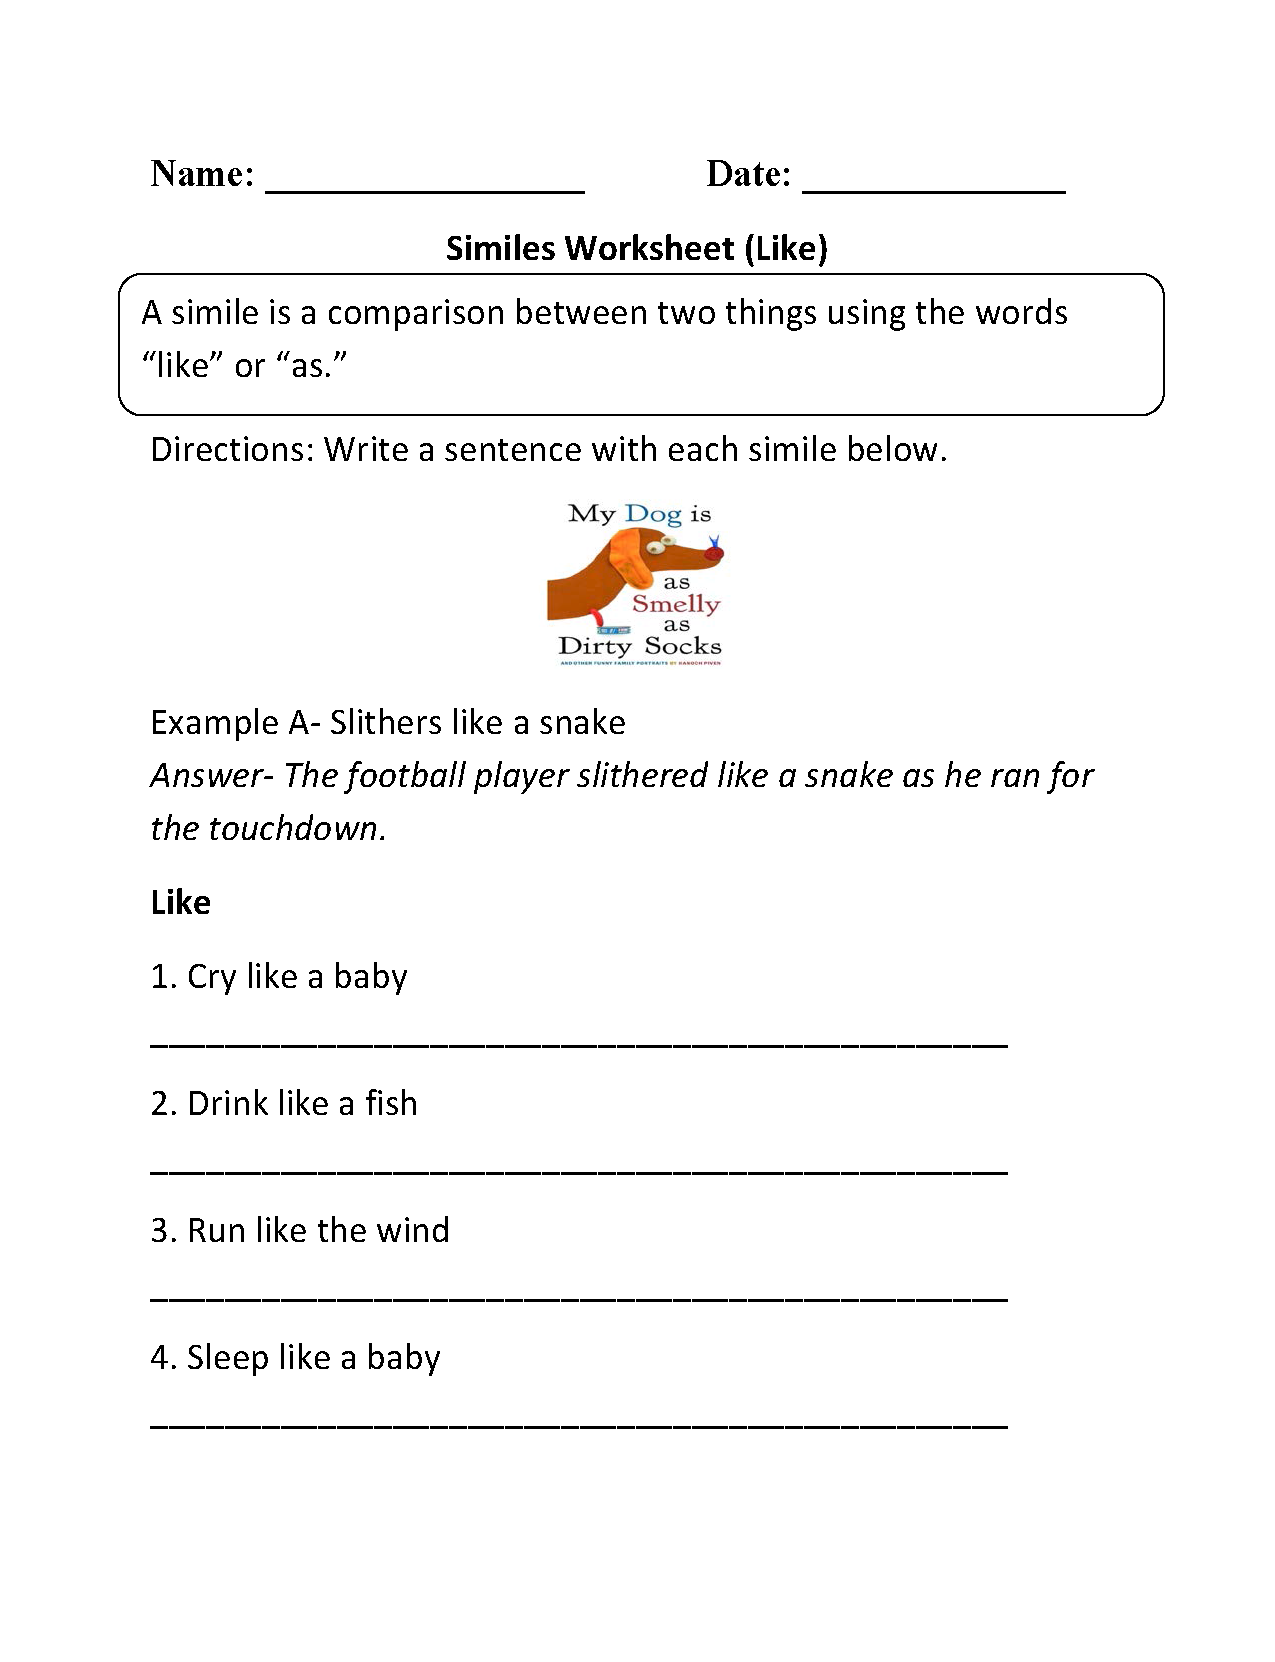 worksheet Similes And Metaphors Ks2 Worksheets englishlinx com similes worksheets worksheet